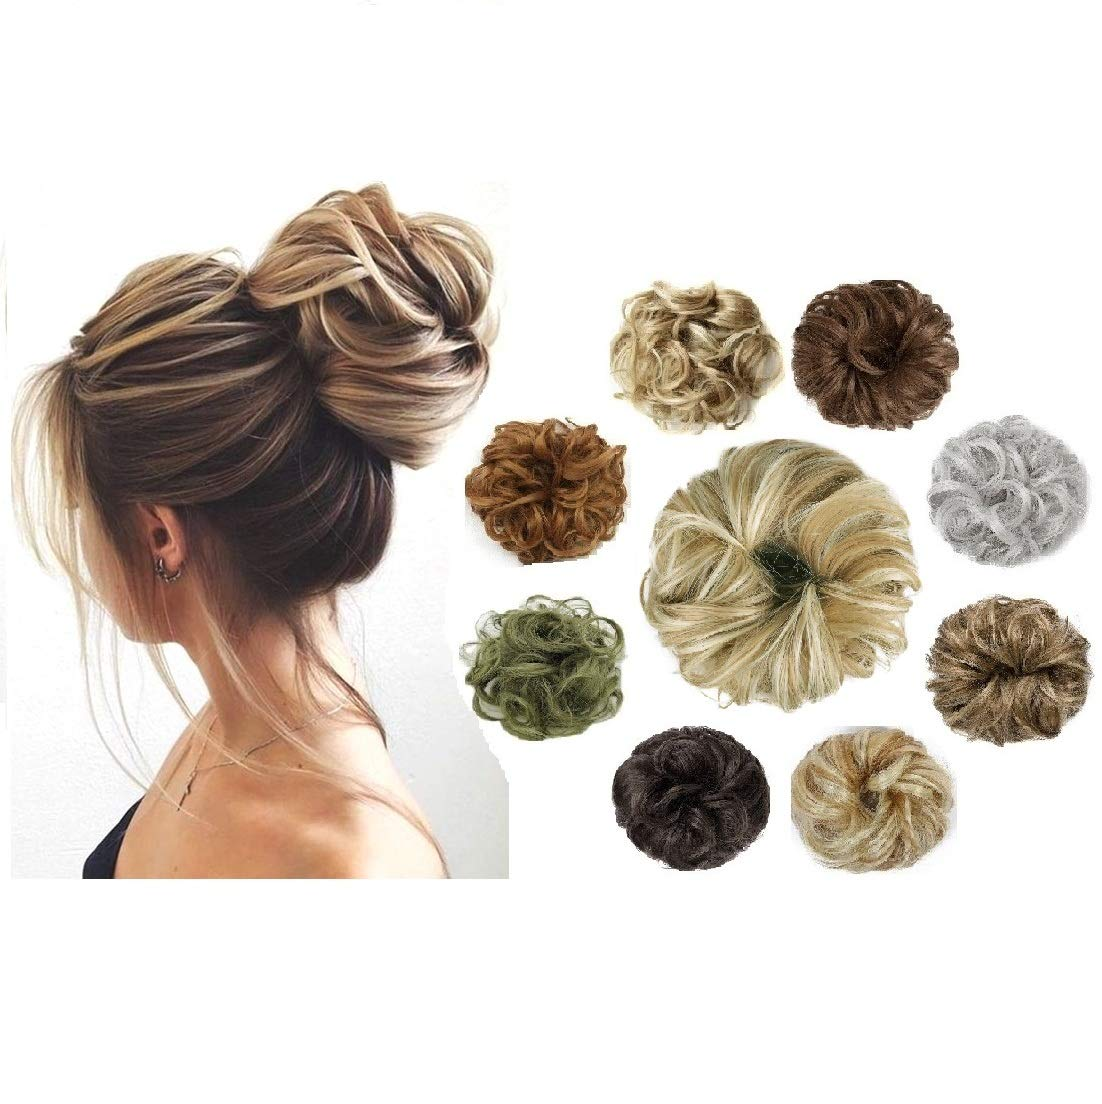 BaFaHo Messy Hair Bun Hair Scrunchies Extension Curly Wavy Messy Synthetic Chignon for Women Updo Hairpies.(2PCS-Ginger Brown & Bleach Blonde)